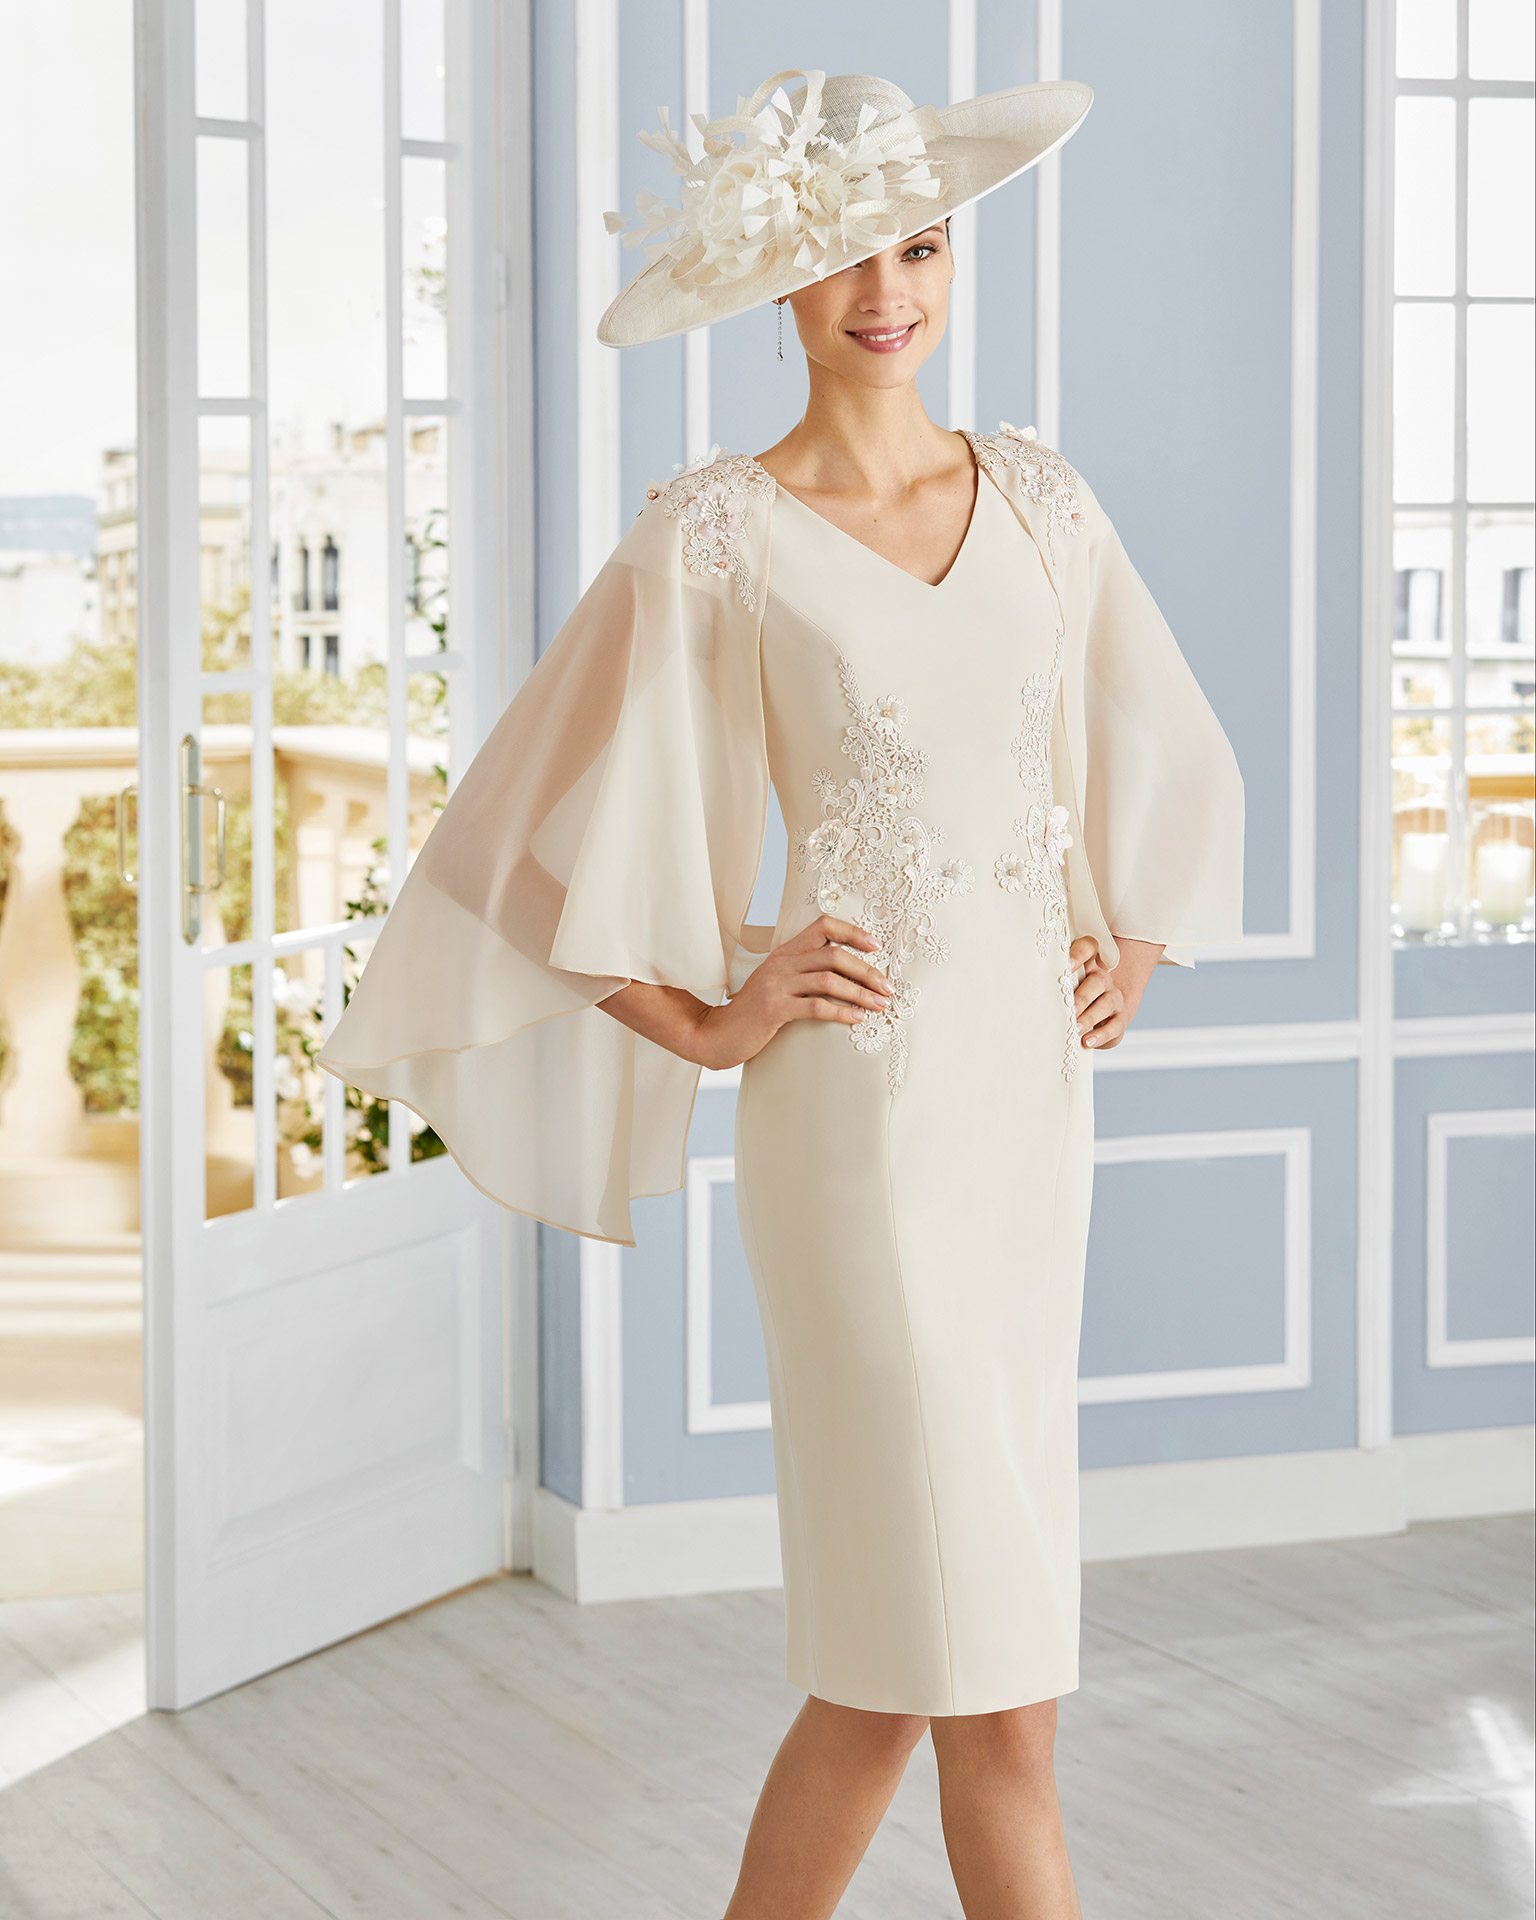 Short cocktail dress in crepe sateen with lace on the bodice. Cape-style neckline and sleeves. 2020 COUTURE CLUB Collection.